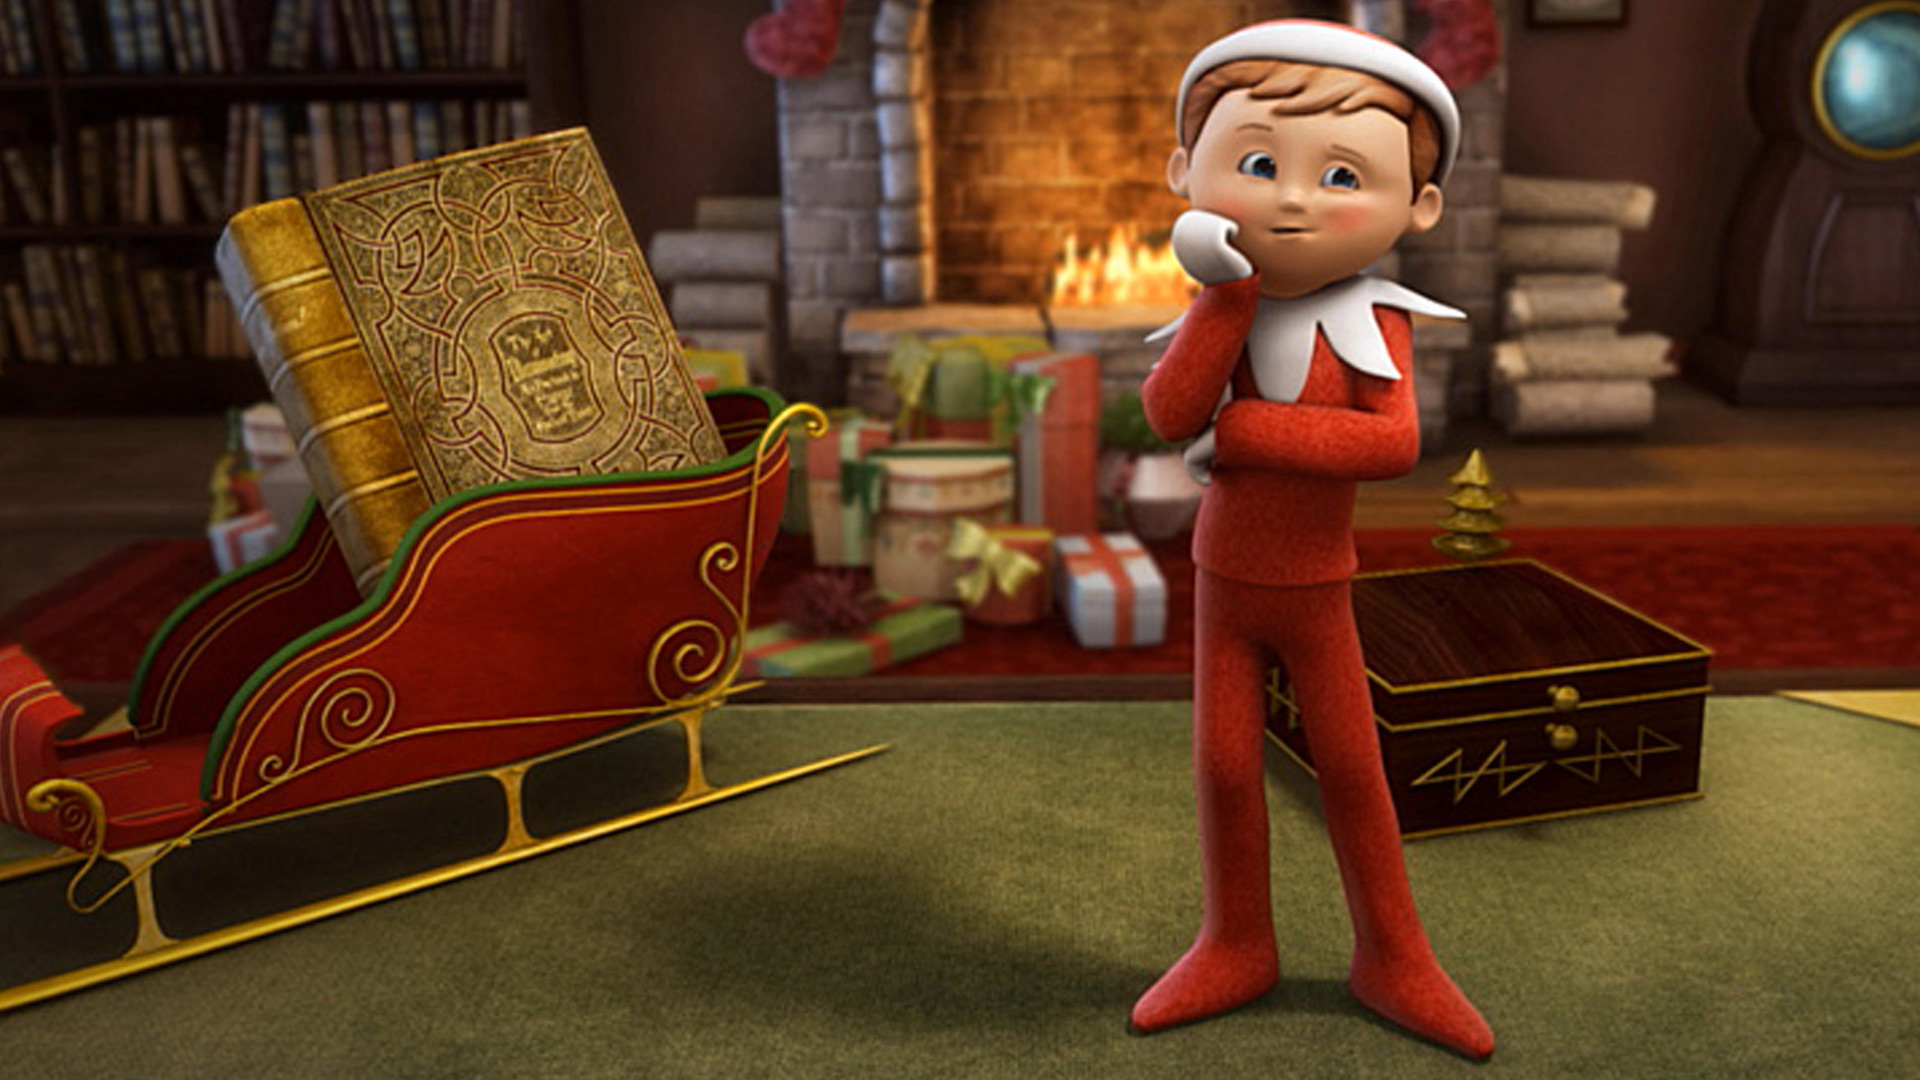 An Elf's Story: The Elf on the Shelf - Season 1